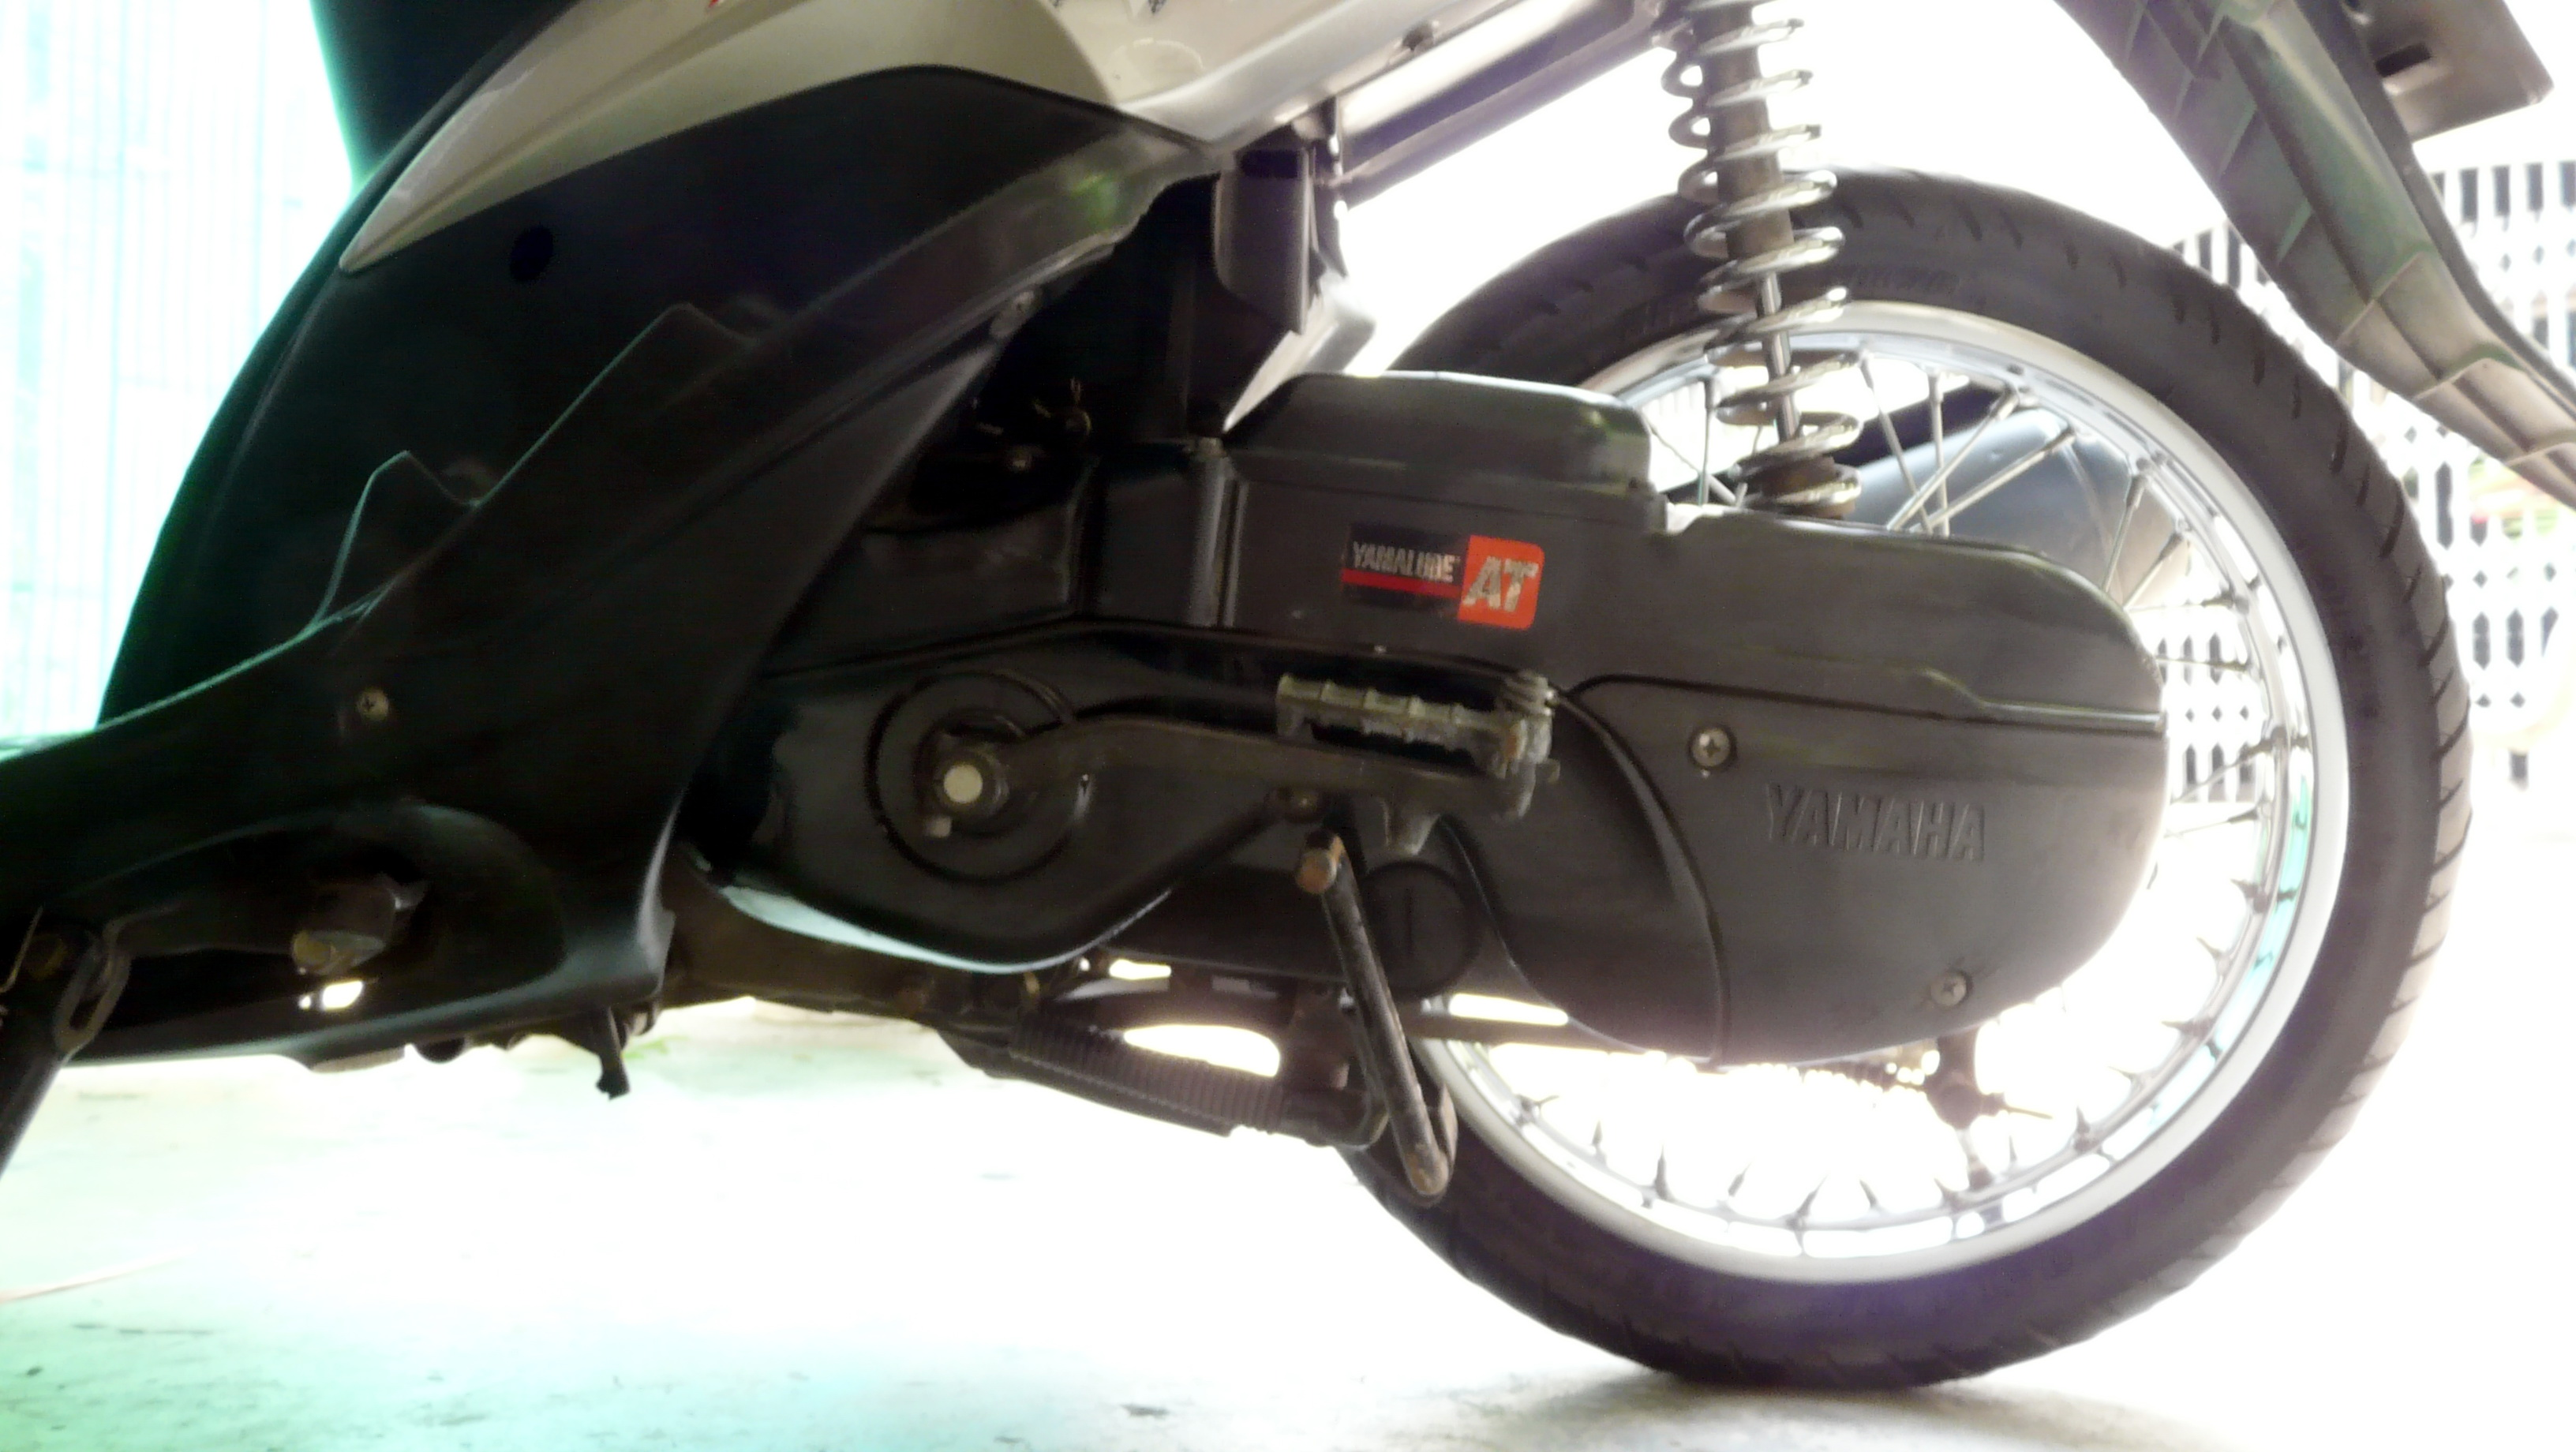 Fileyamaha mio z rear suspension and cvt system 20101003 jpg